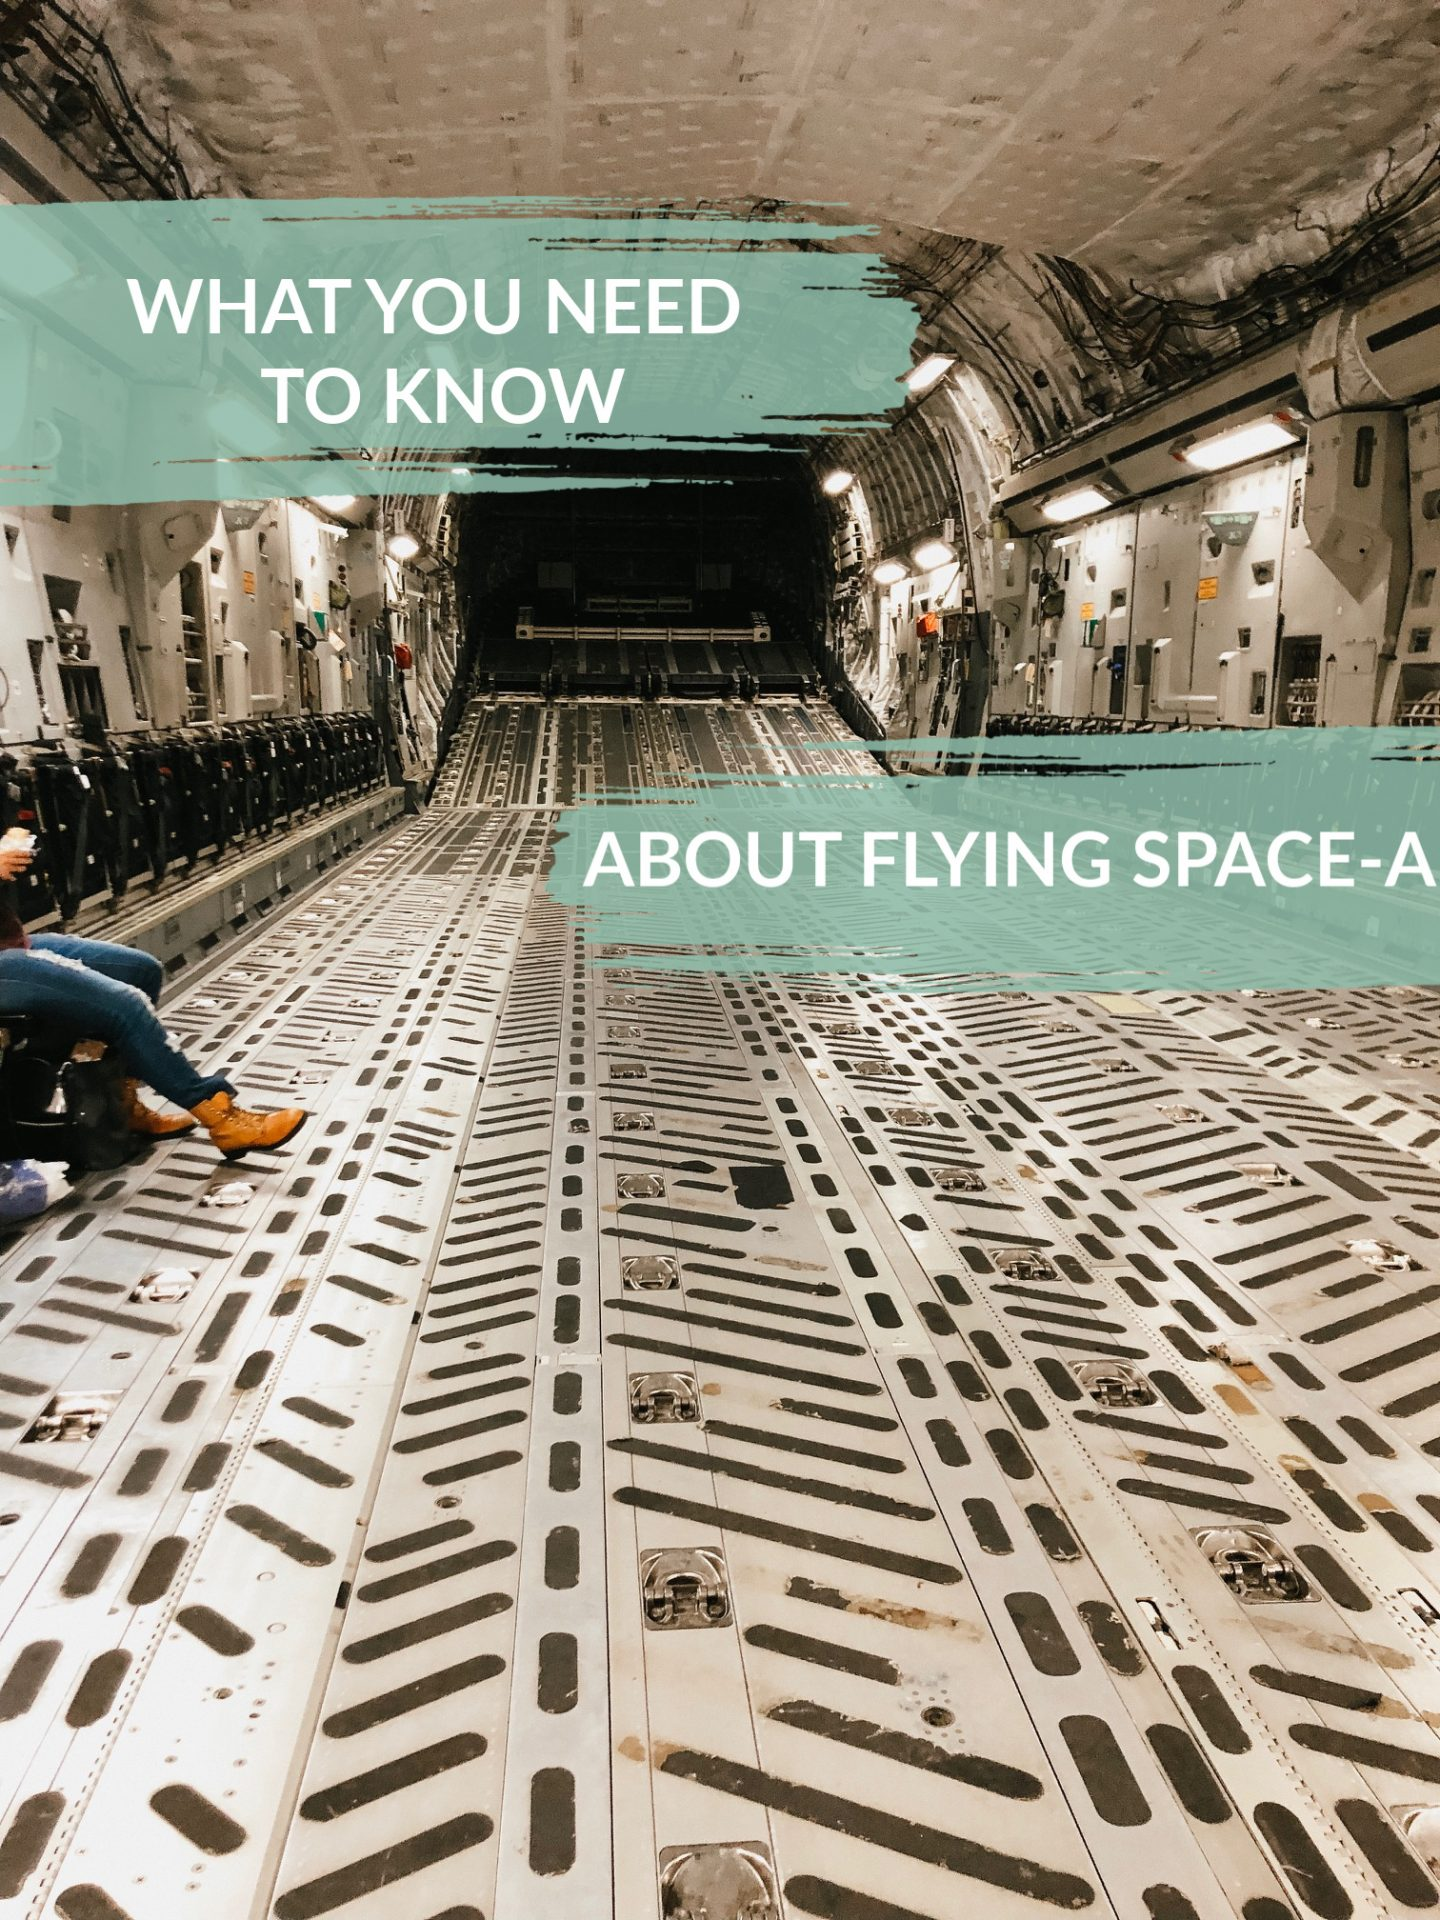 a guide to flying space-a